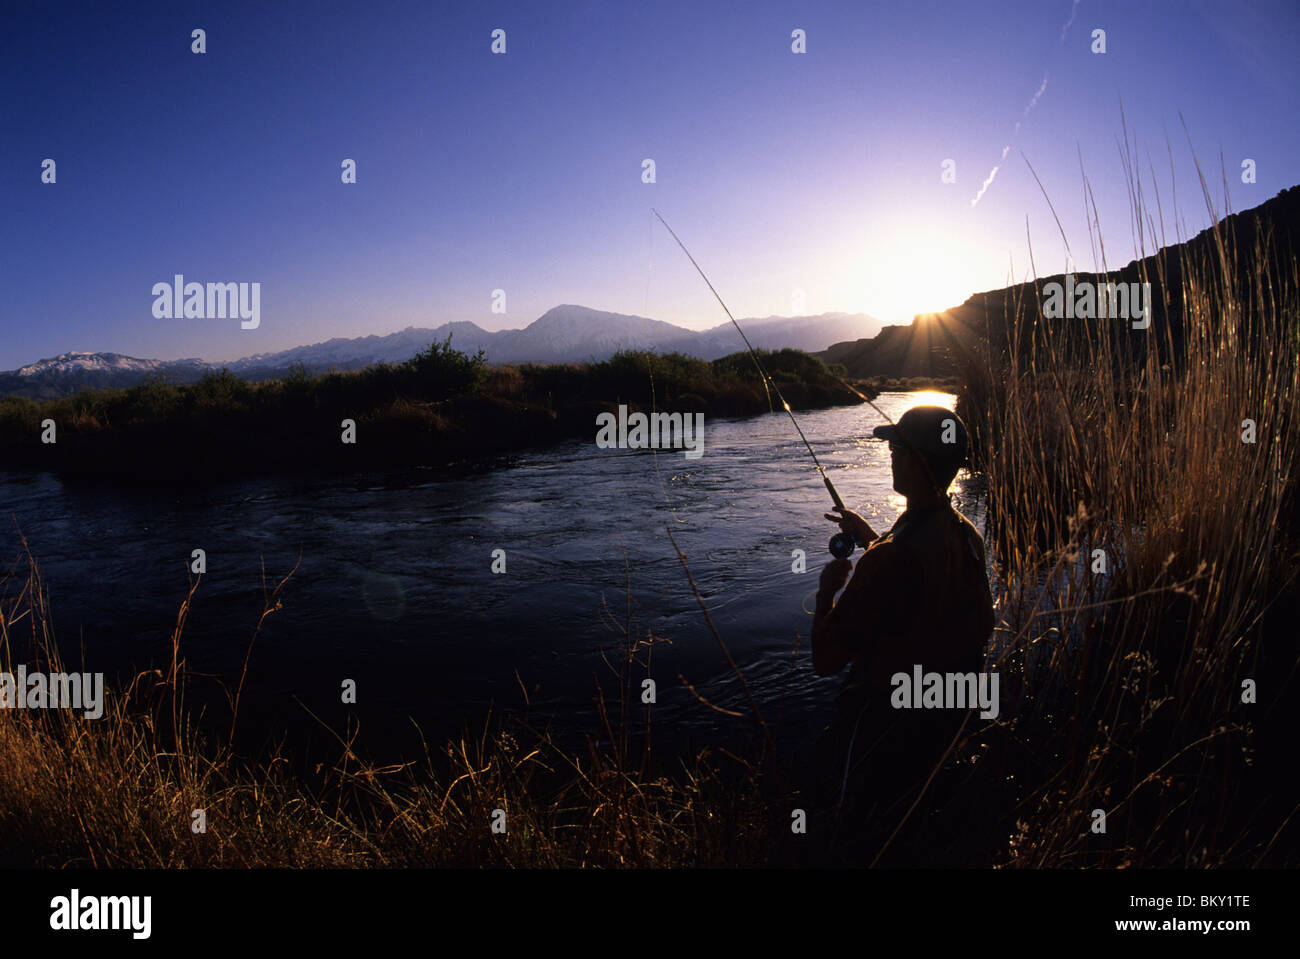 A man fly fishing in Bishop, California. - Stock Image